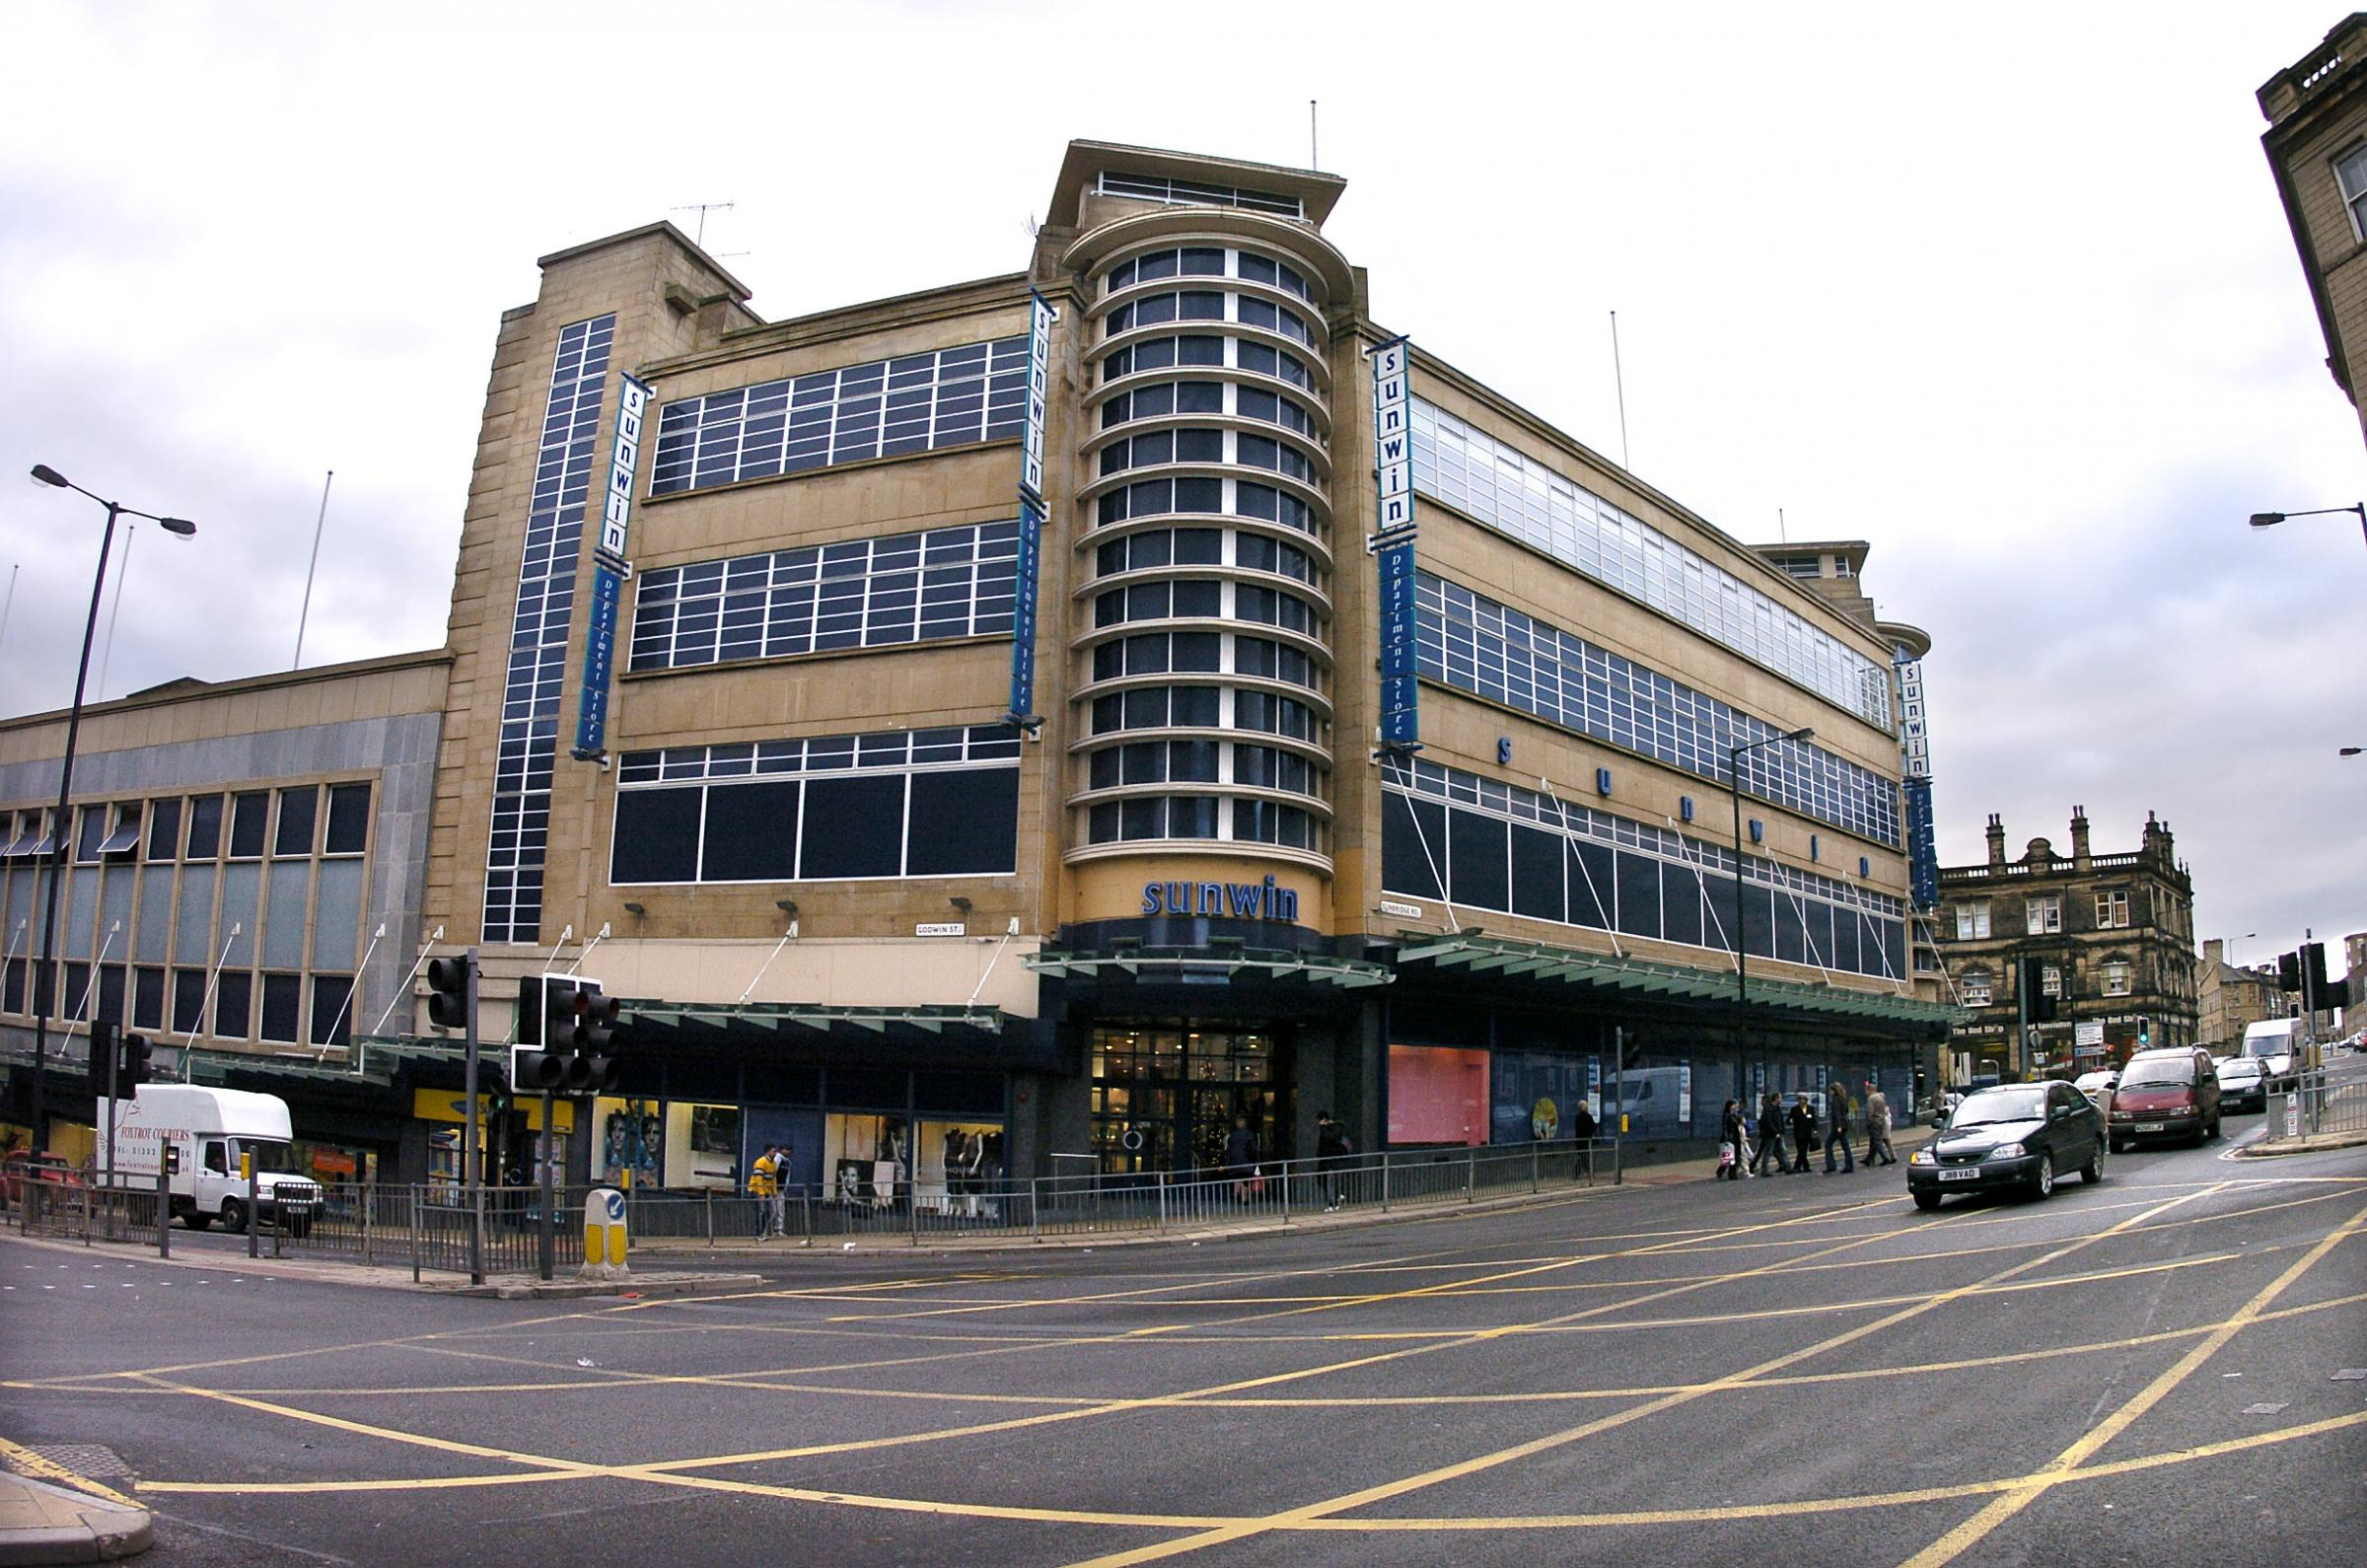 GRANT: Sunwin House, in Sunbridge Road, Bradford, pictured in 2006, is being looked into as a possible multi-use cultural hub